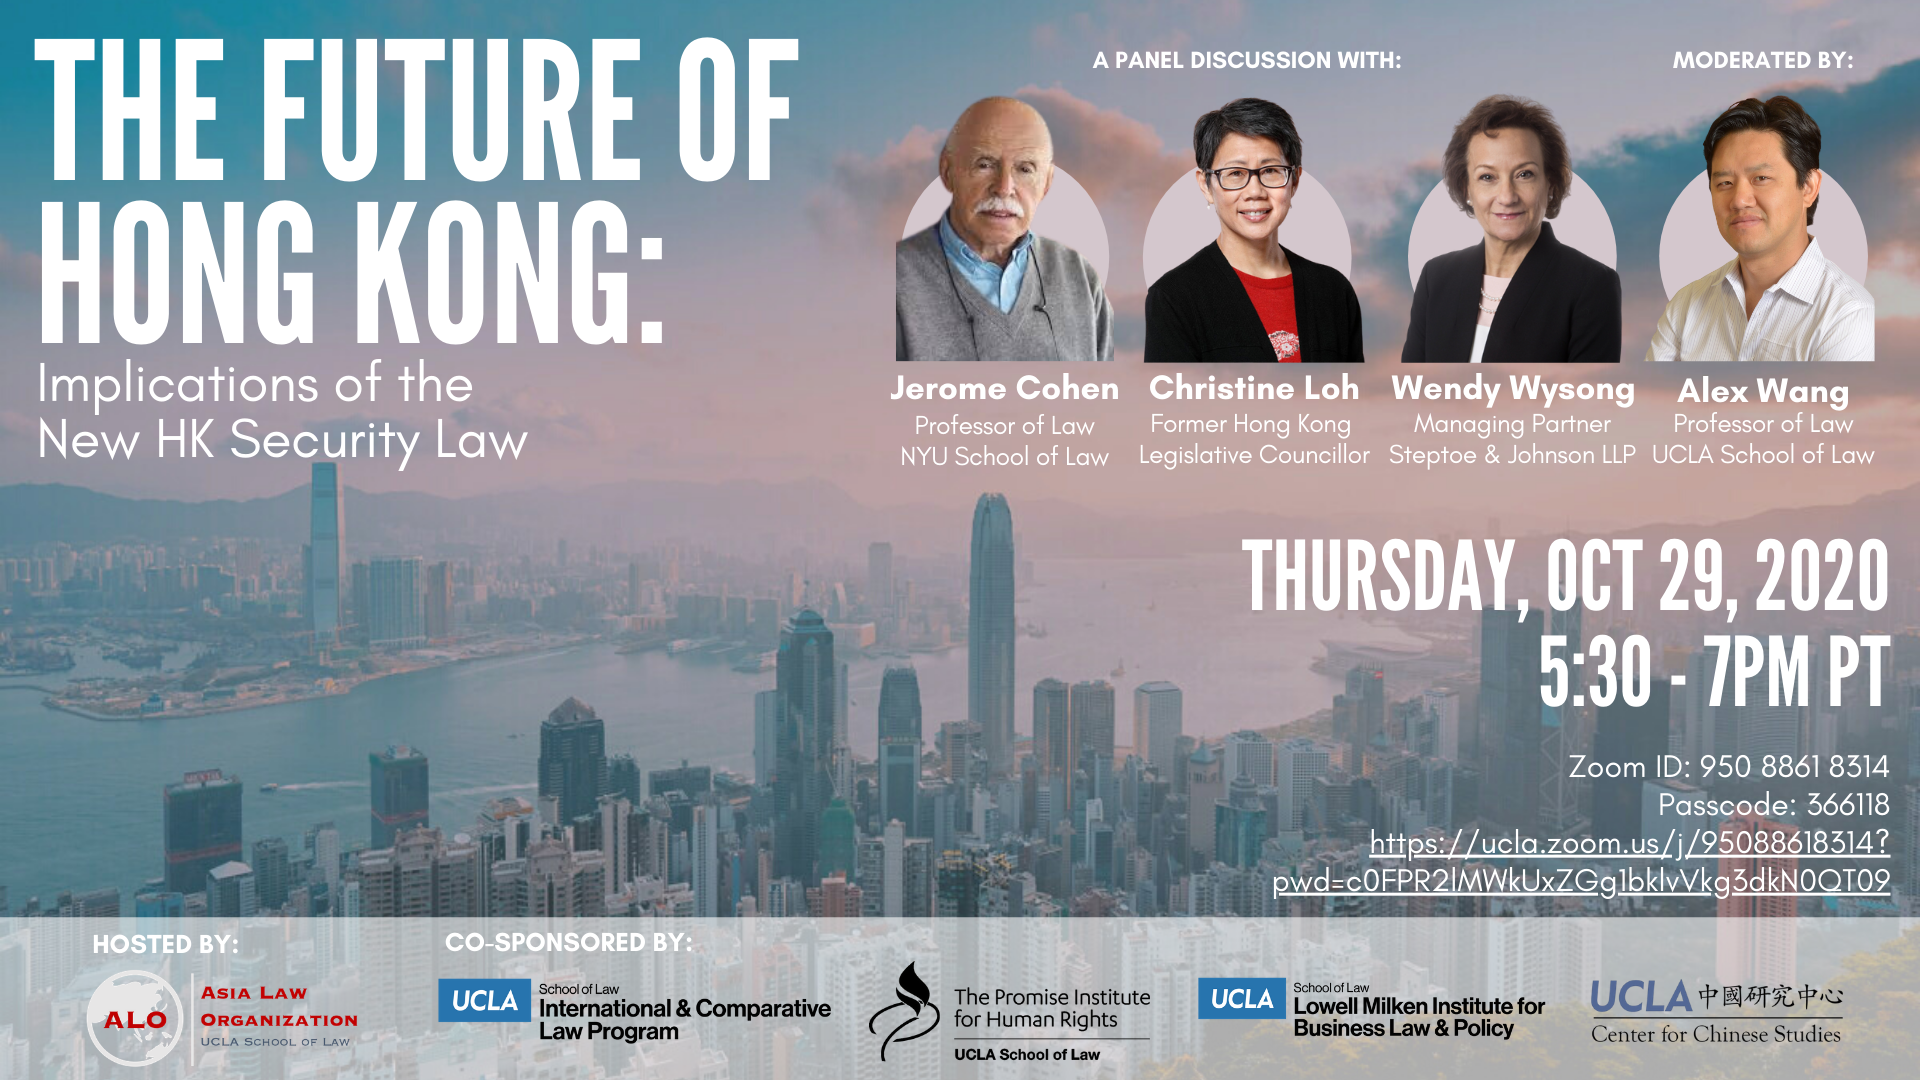 The Future of Hong Kong: Implications of the New HK Security Law